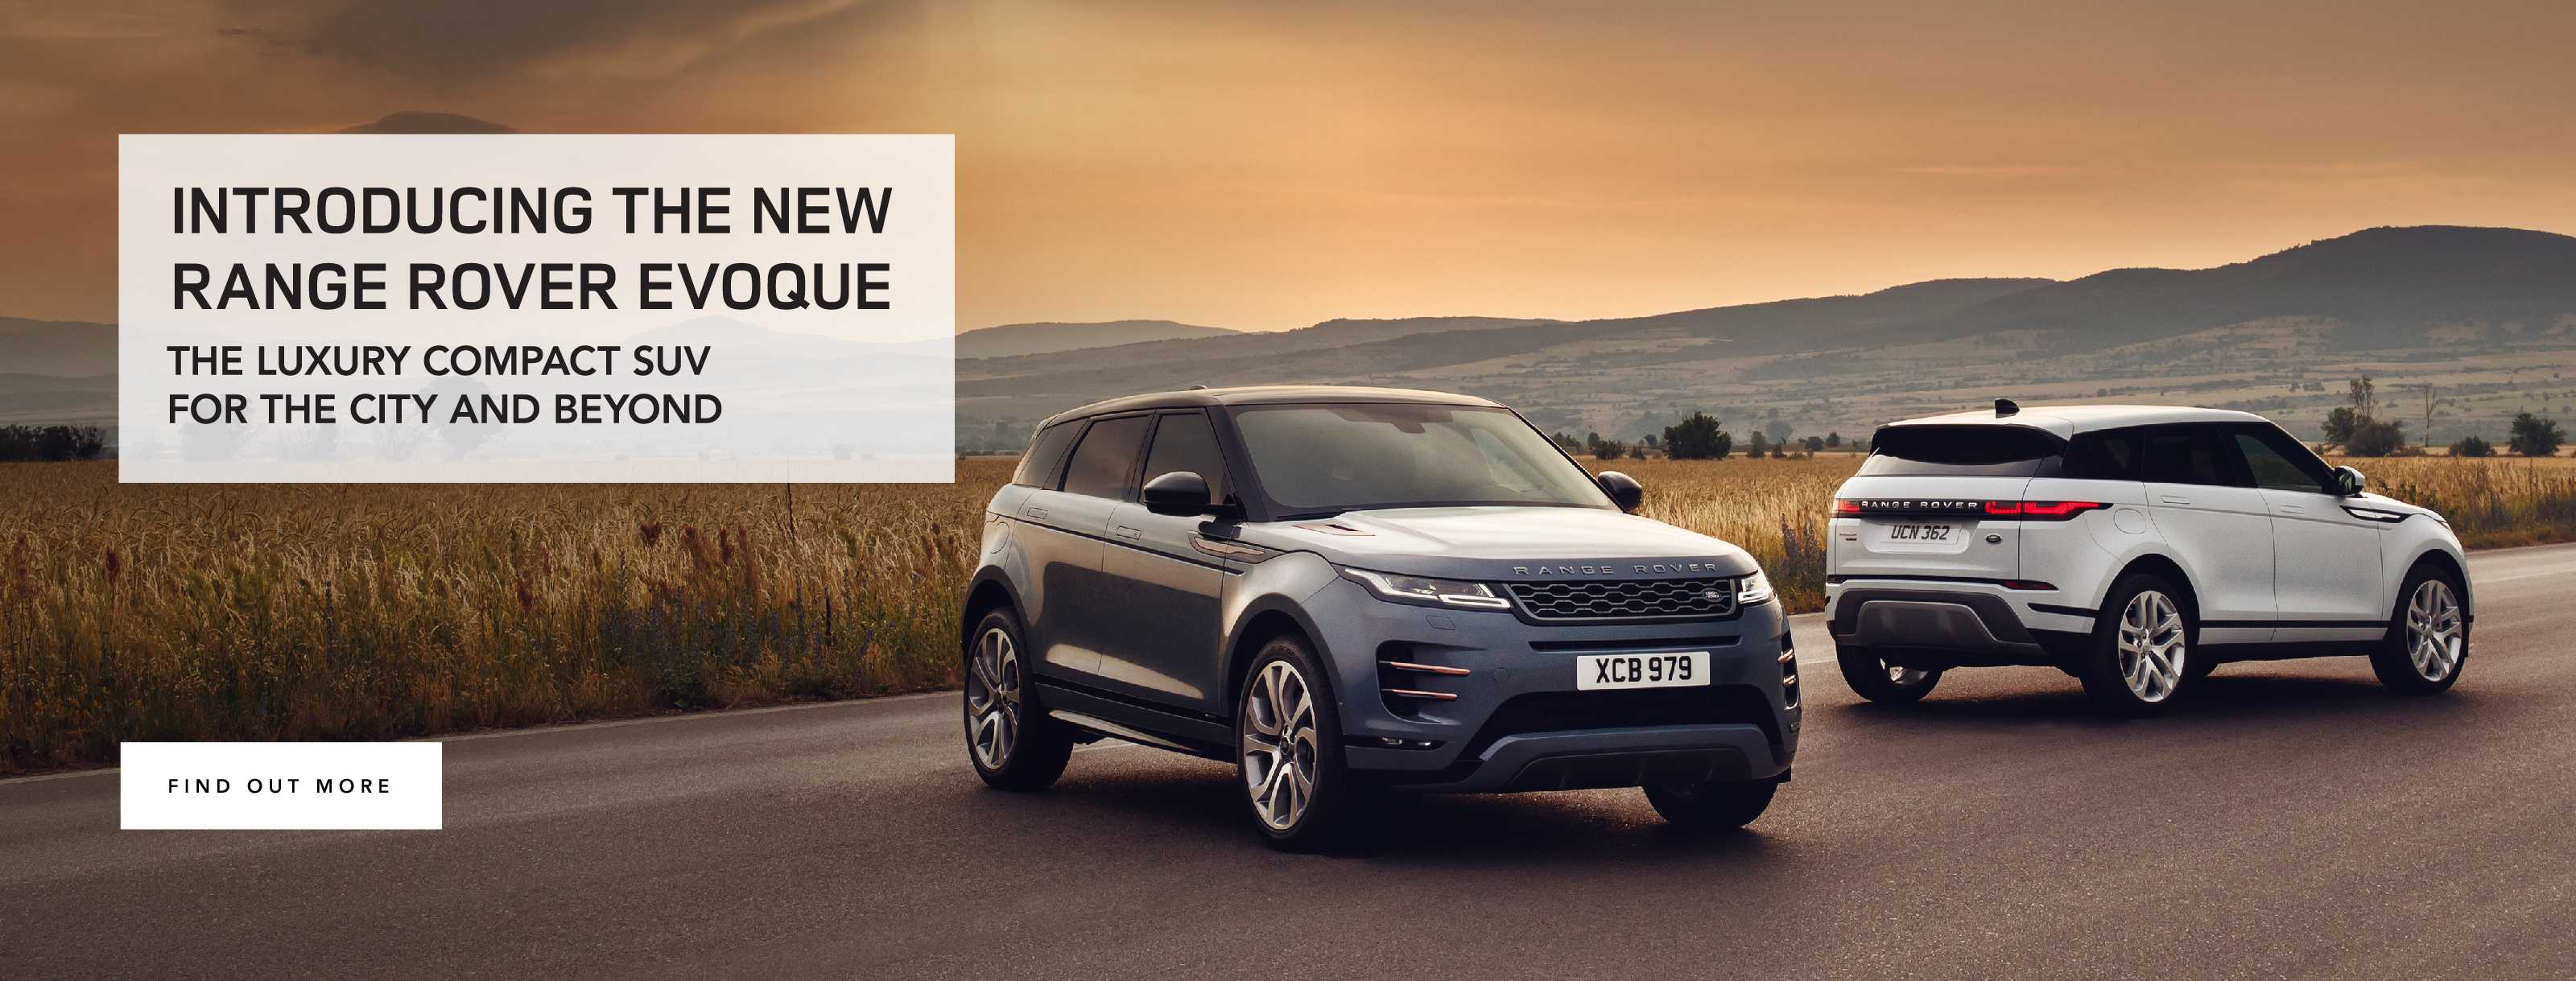 The New Land Rover Range Rover Evoque BB